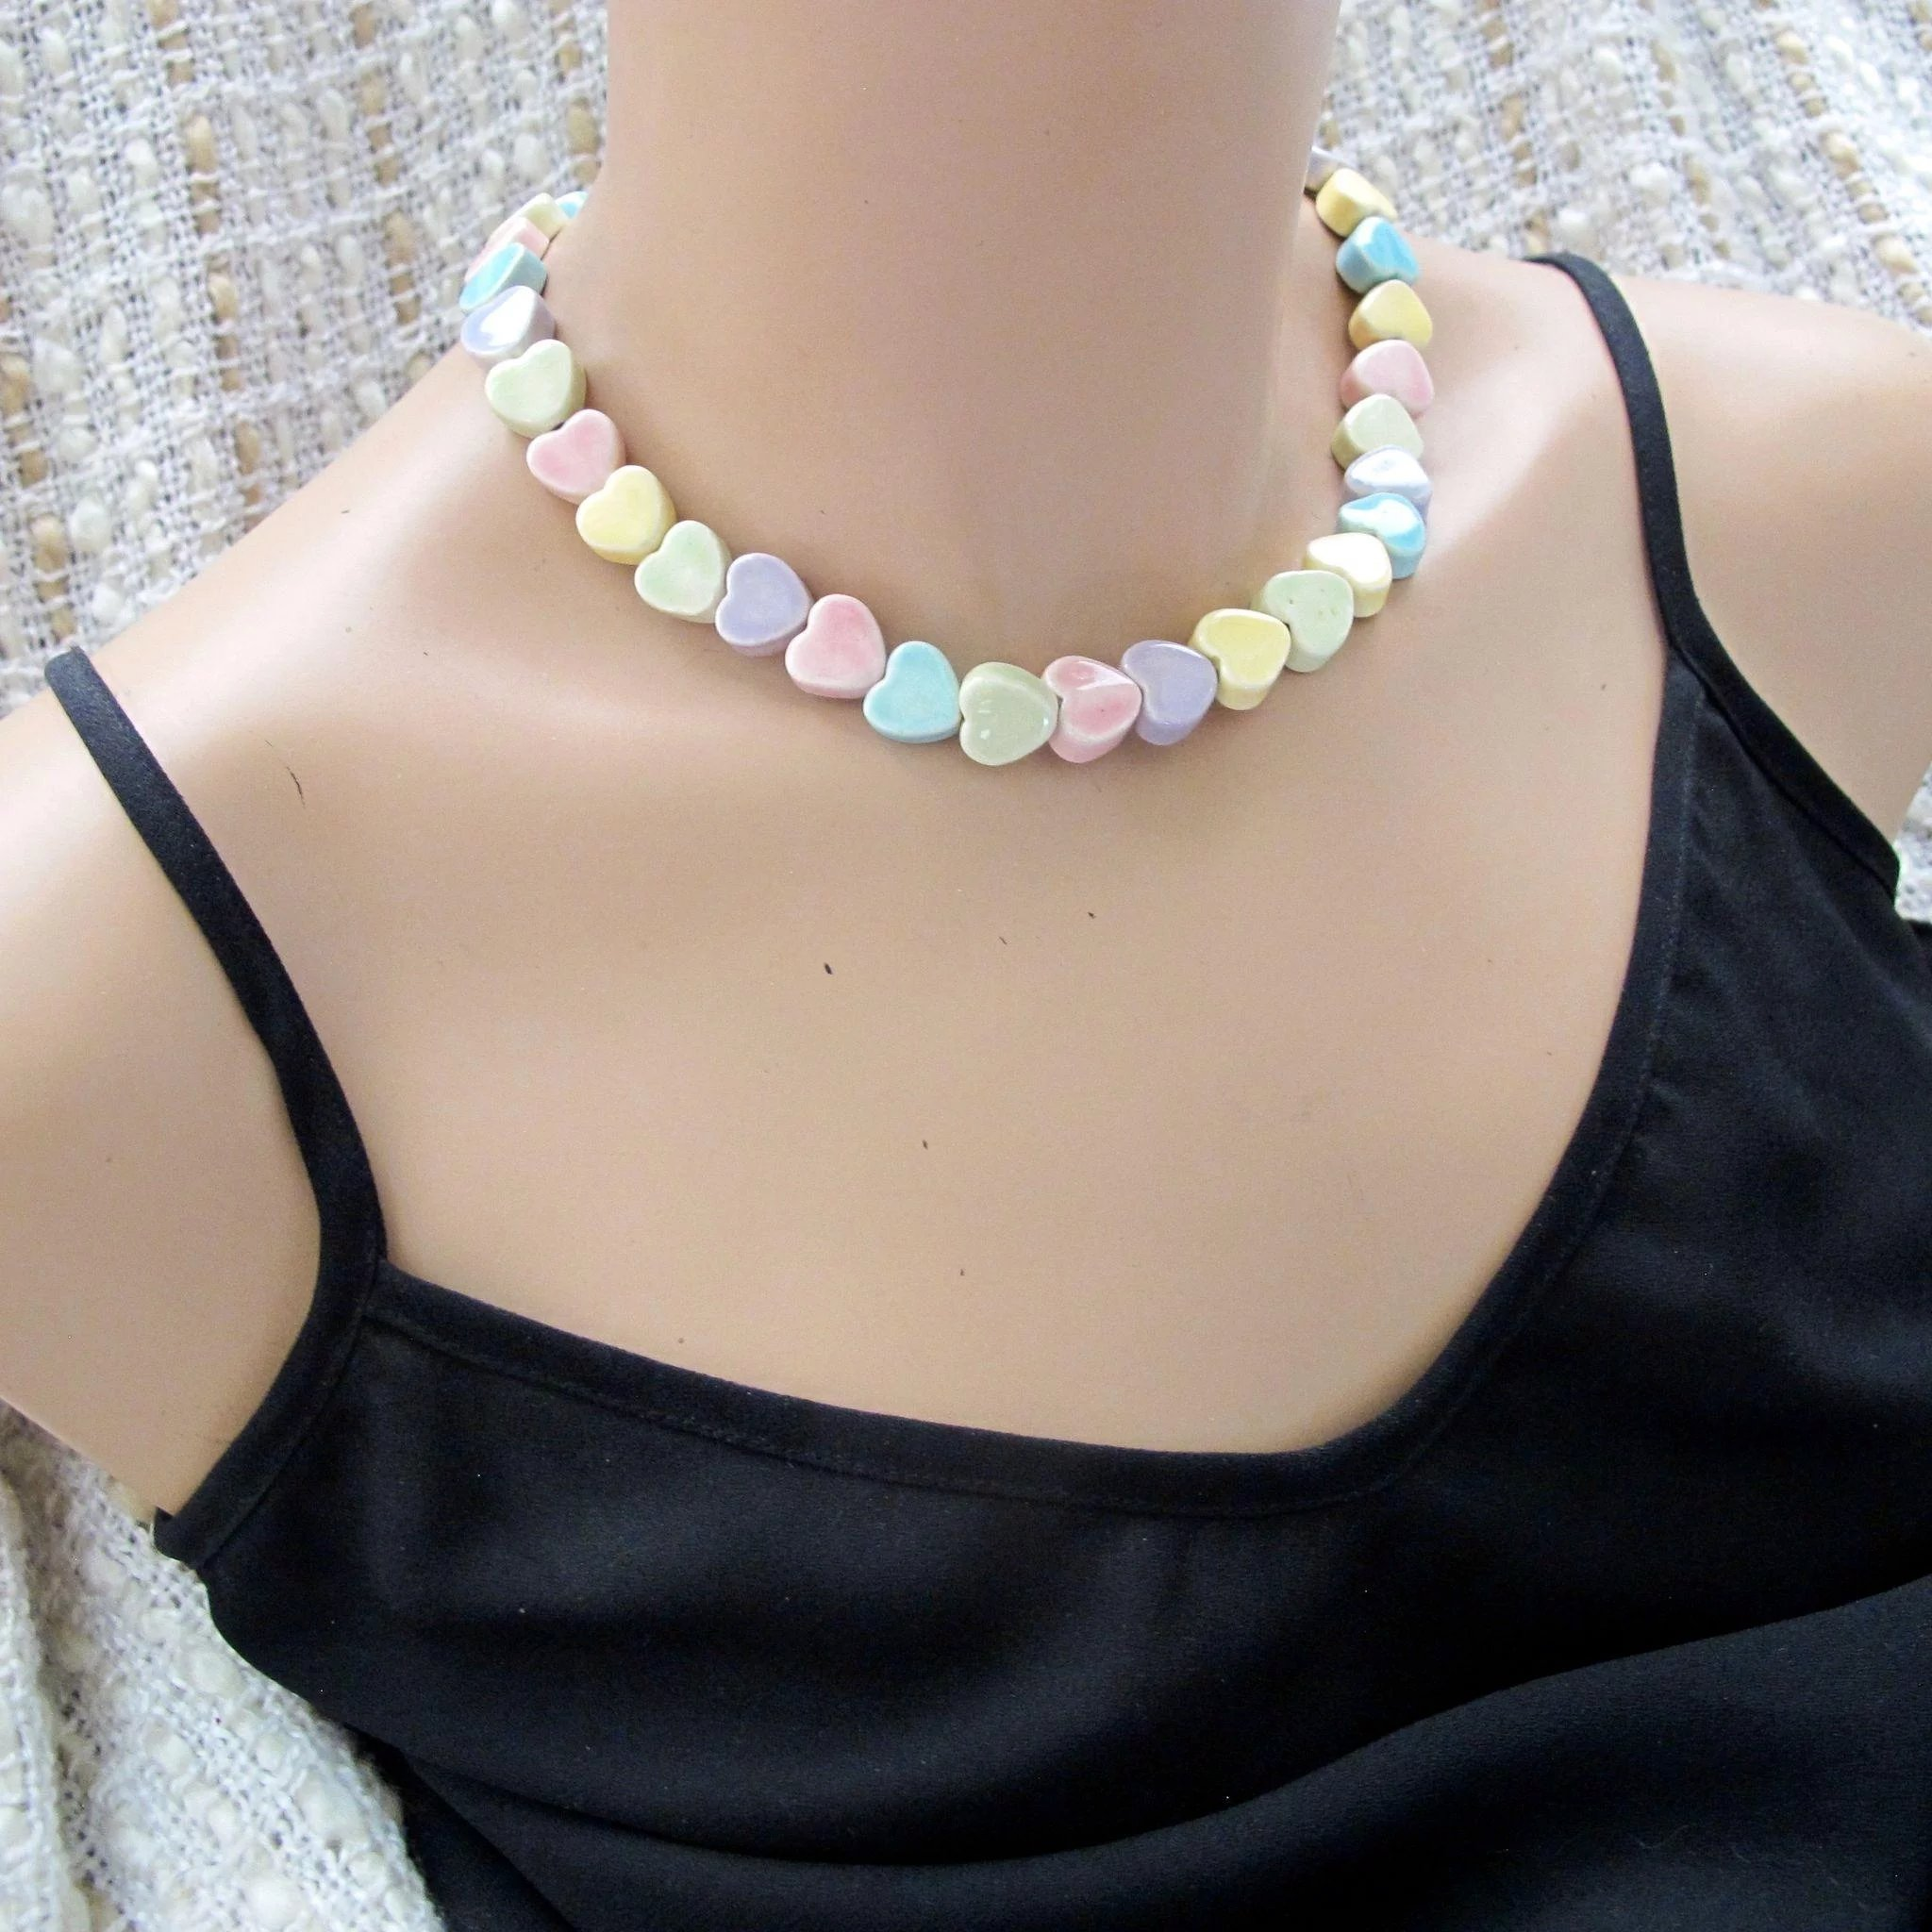 Vintage Parrot Pearls Pastel Candy Hearts Ceramic Necklace